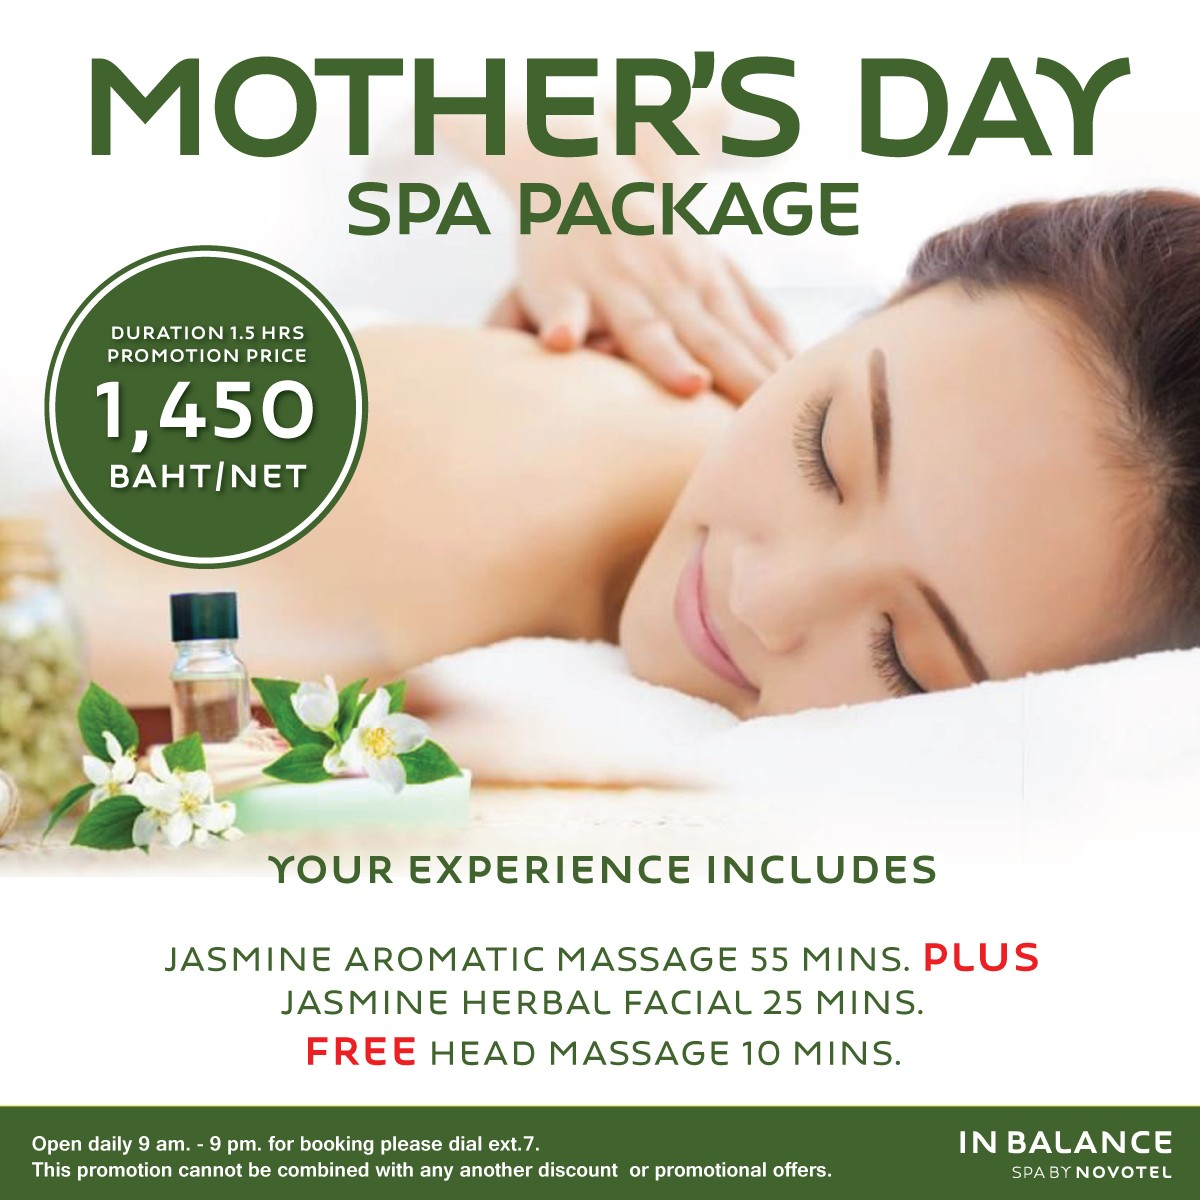 Mother's Day Spa Package